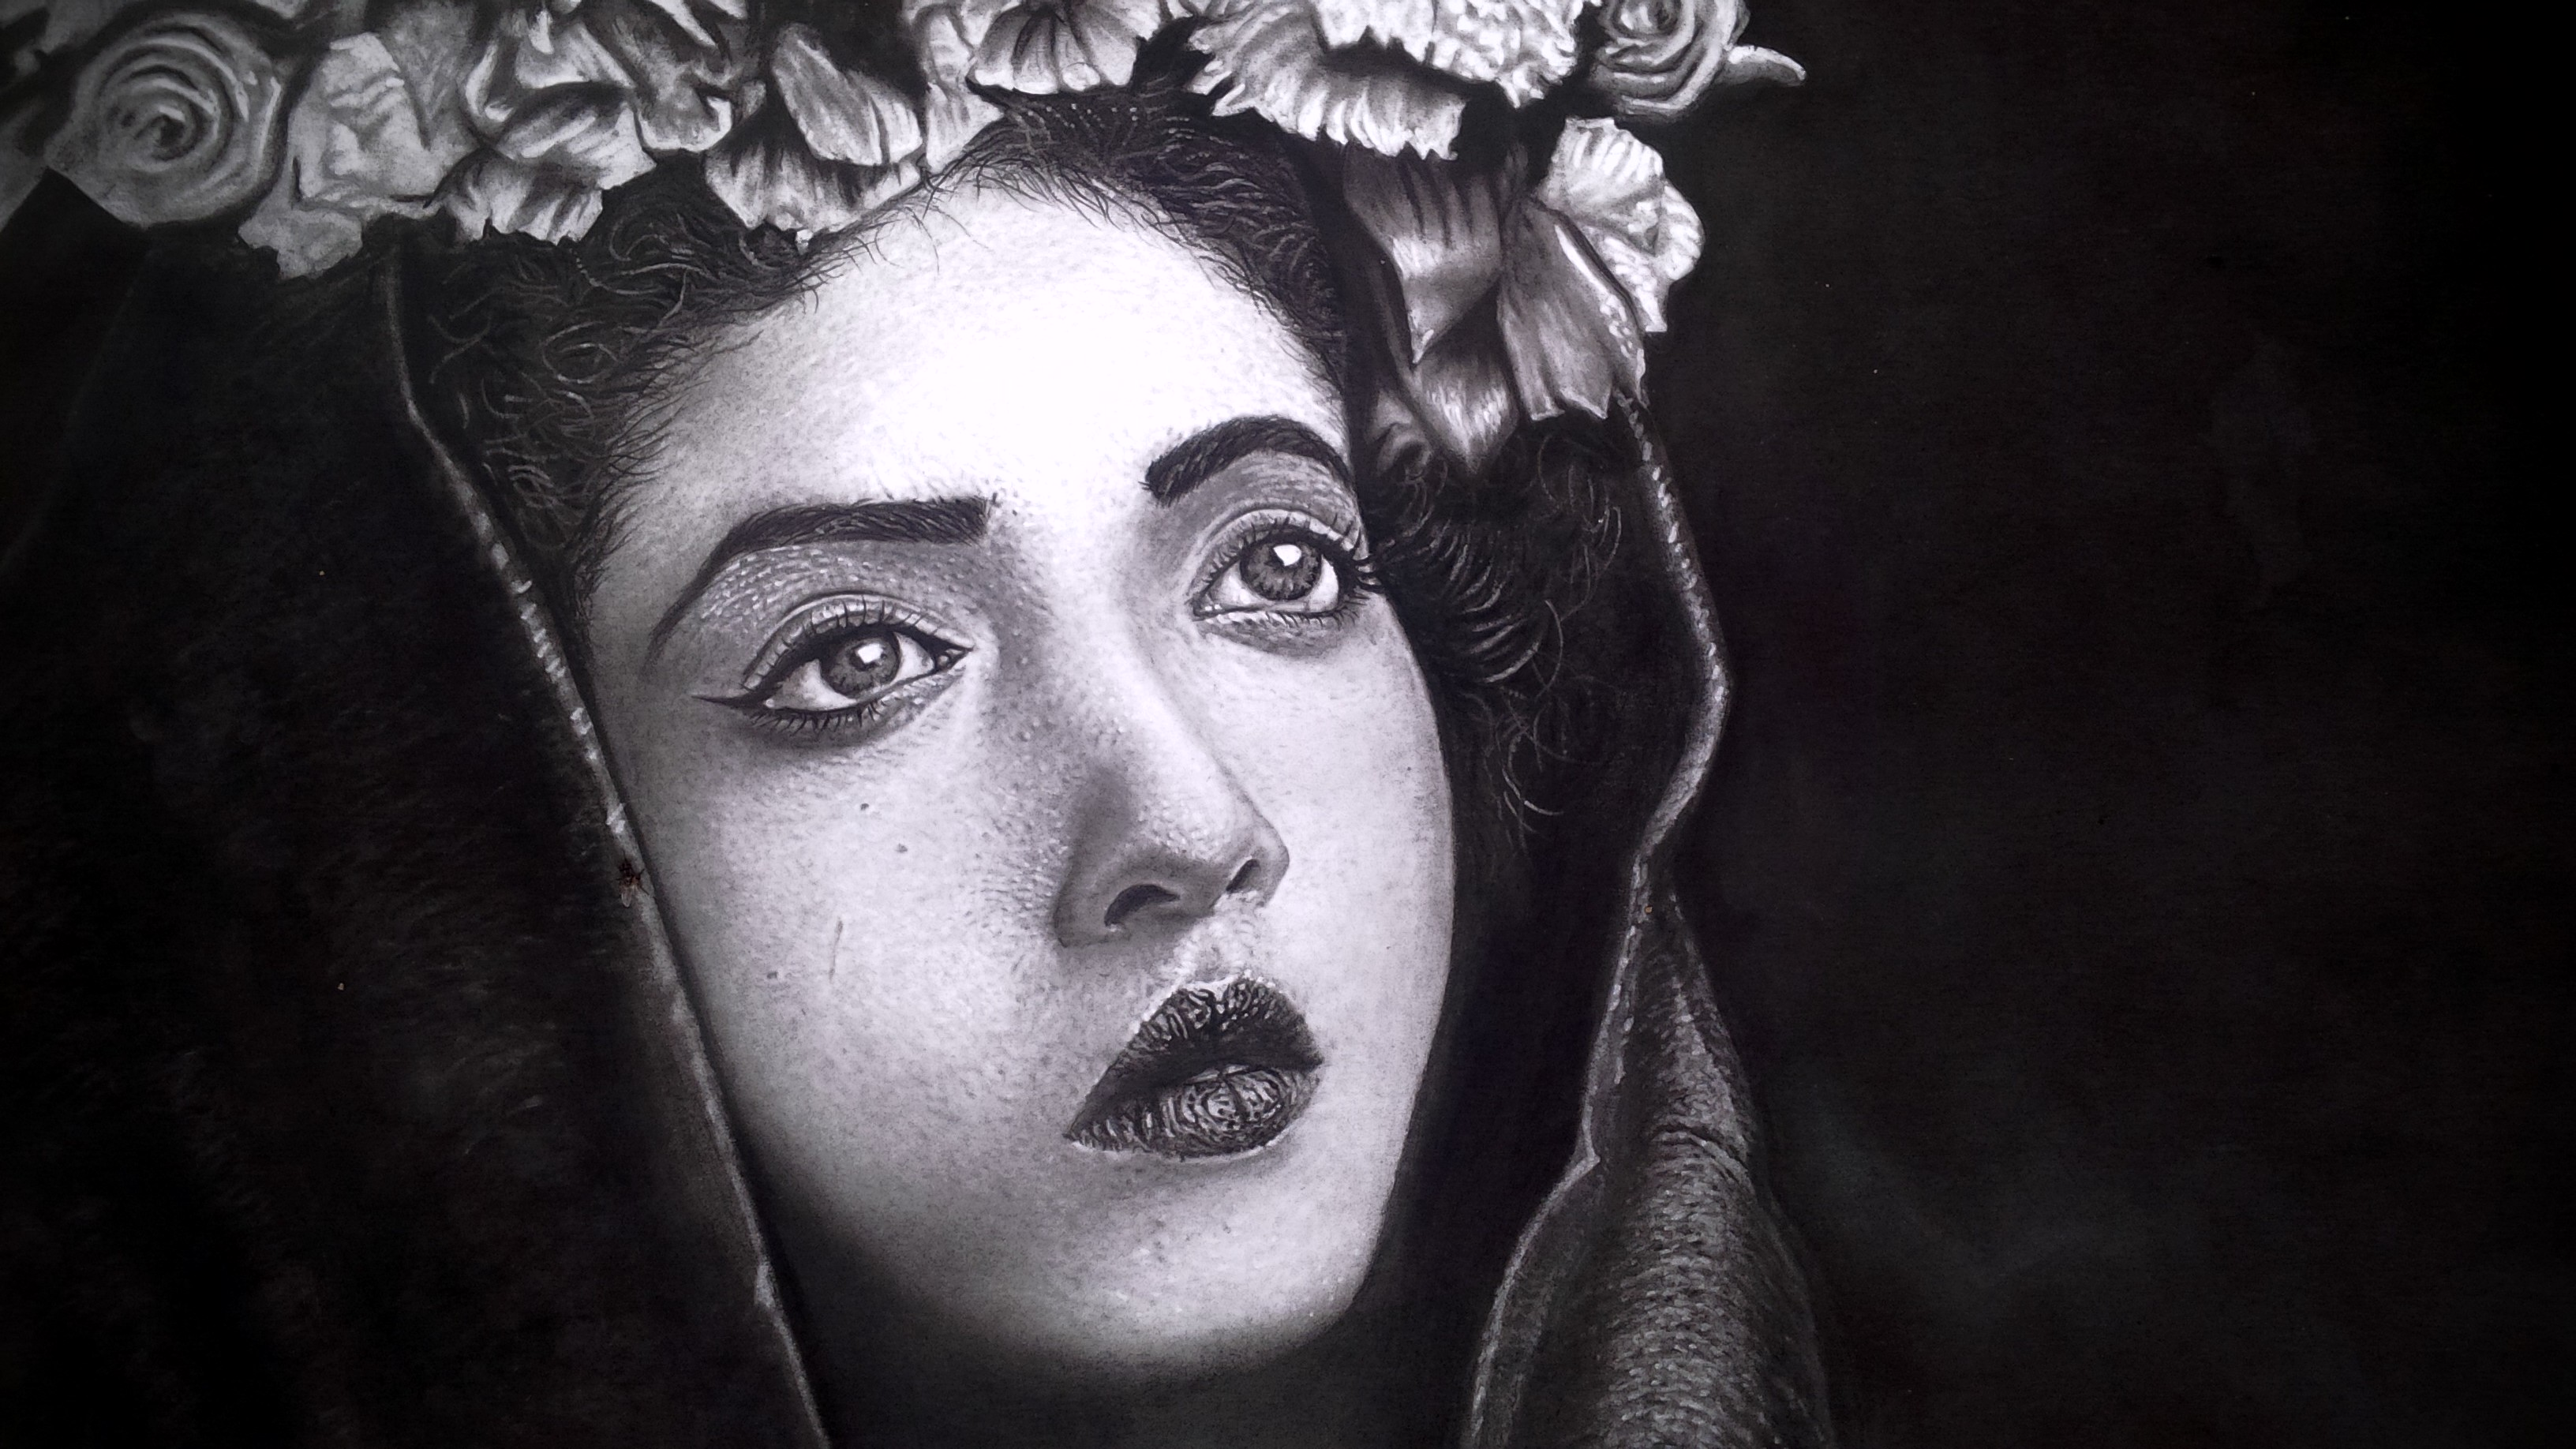 See These Dramatic Pencil Drawings By Cofrancis From Nigeria